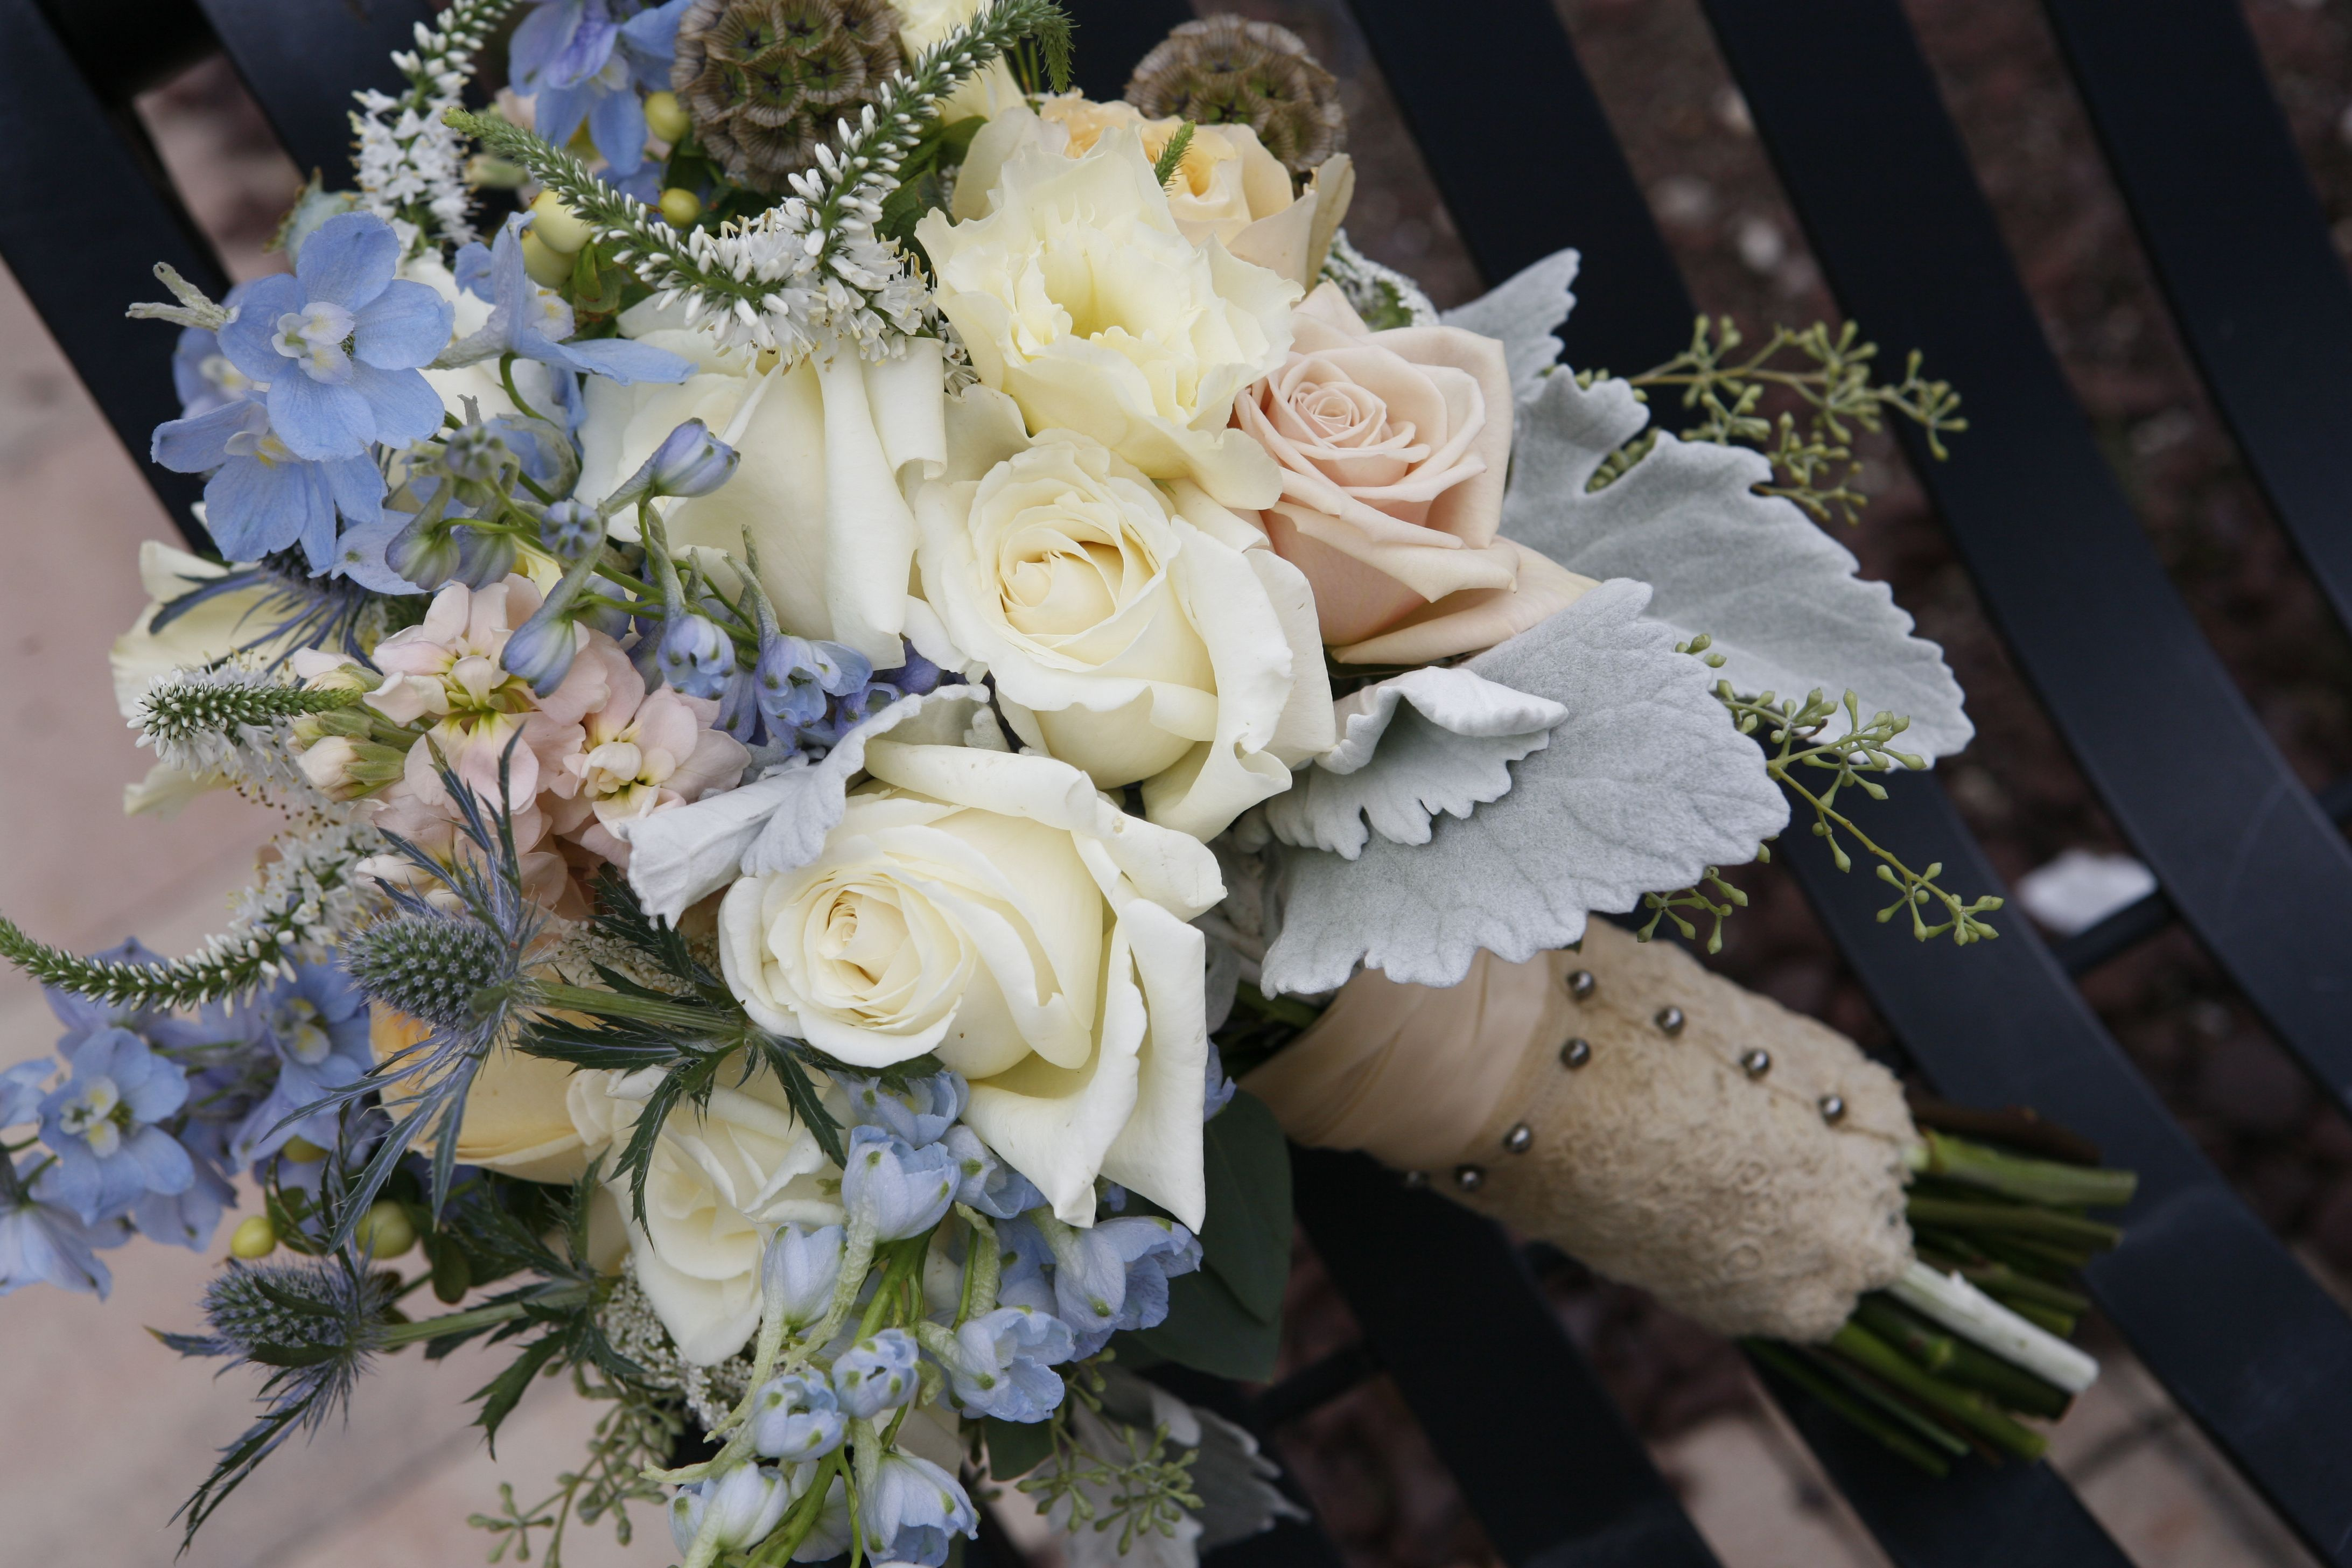 Bouquet design by Lana with #FairbanksFlorist, #NuVisionsinPhotography